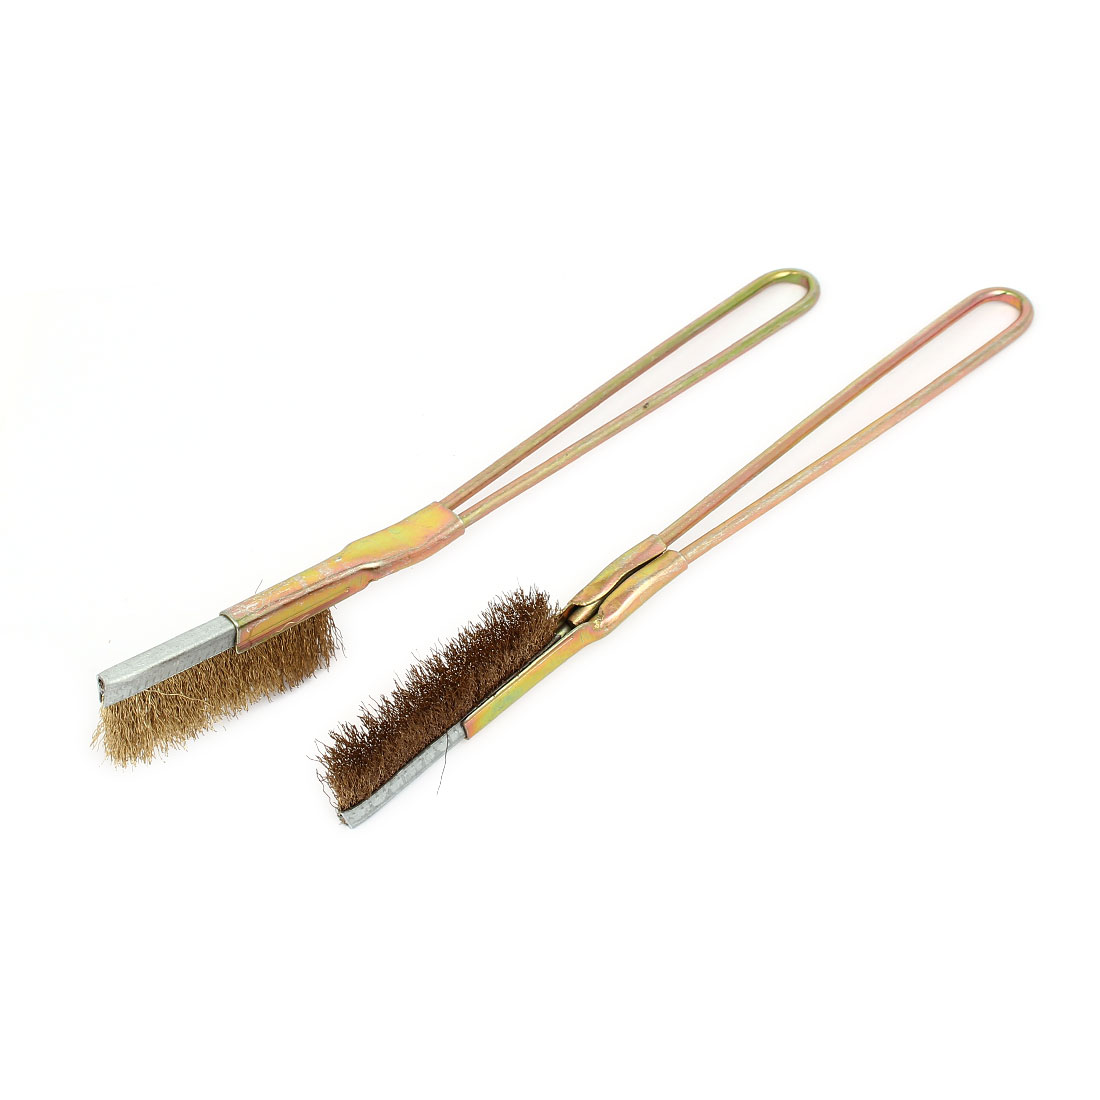 150mm Handle Length Straight Head Brass Wire Brushes 2pcs for Cleaning Rust